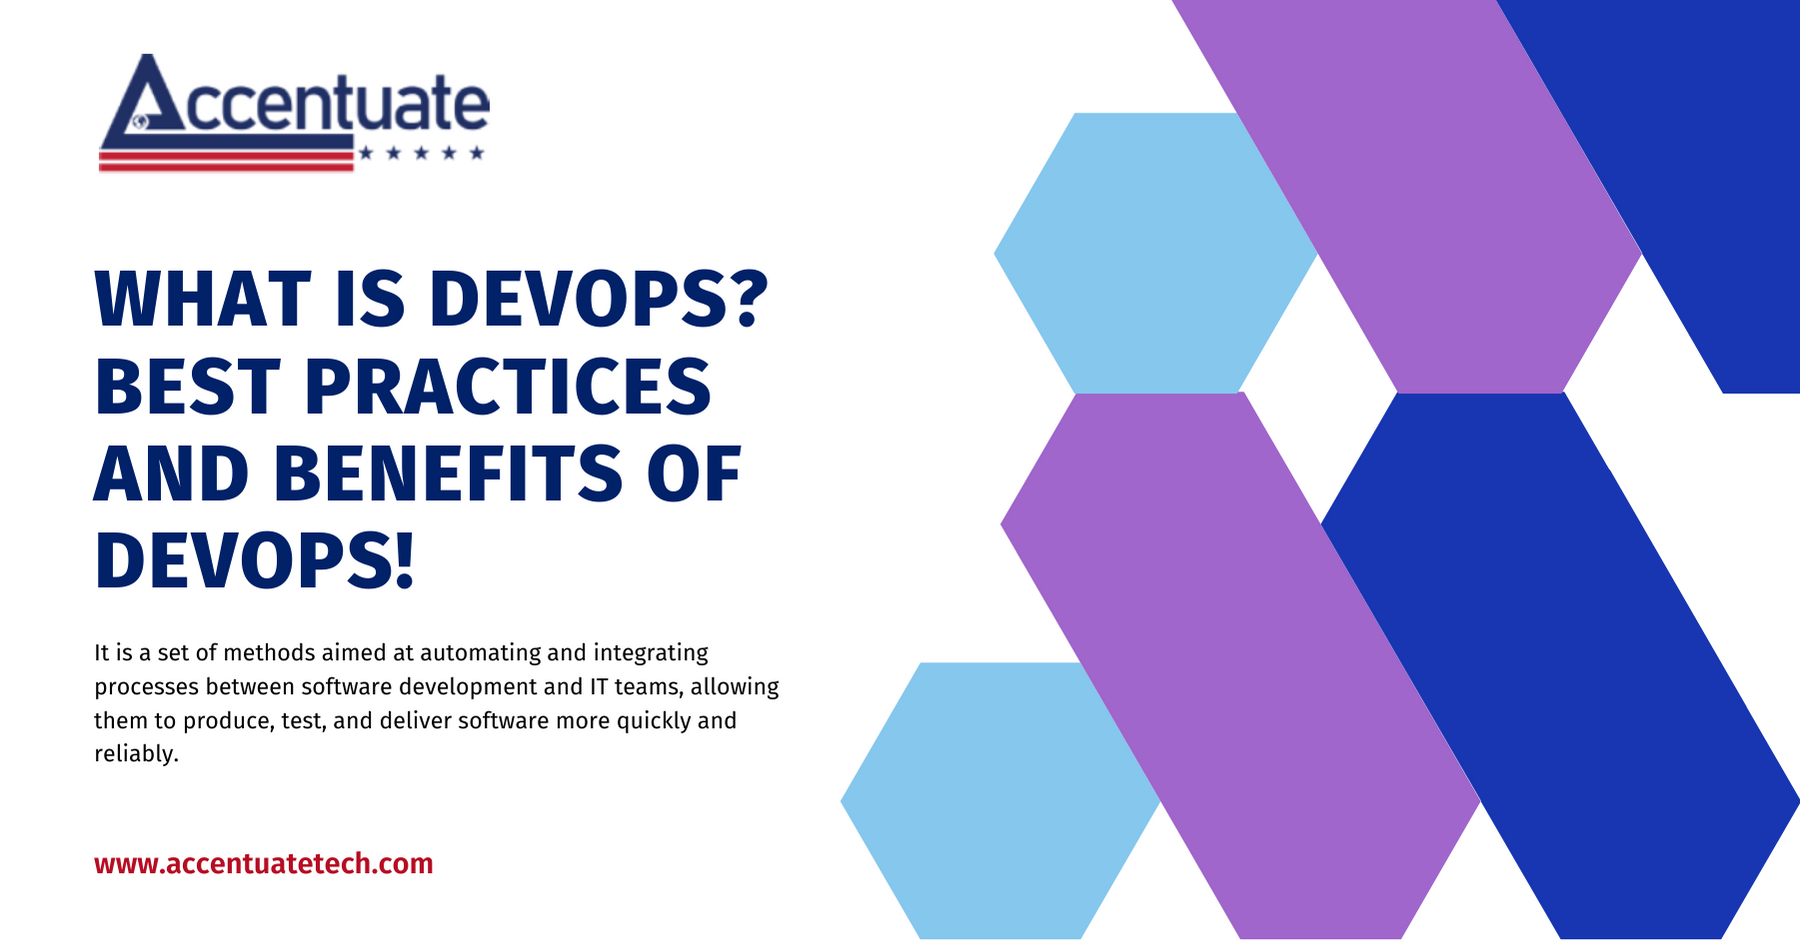 What is Devops? Benefits and Best practices